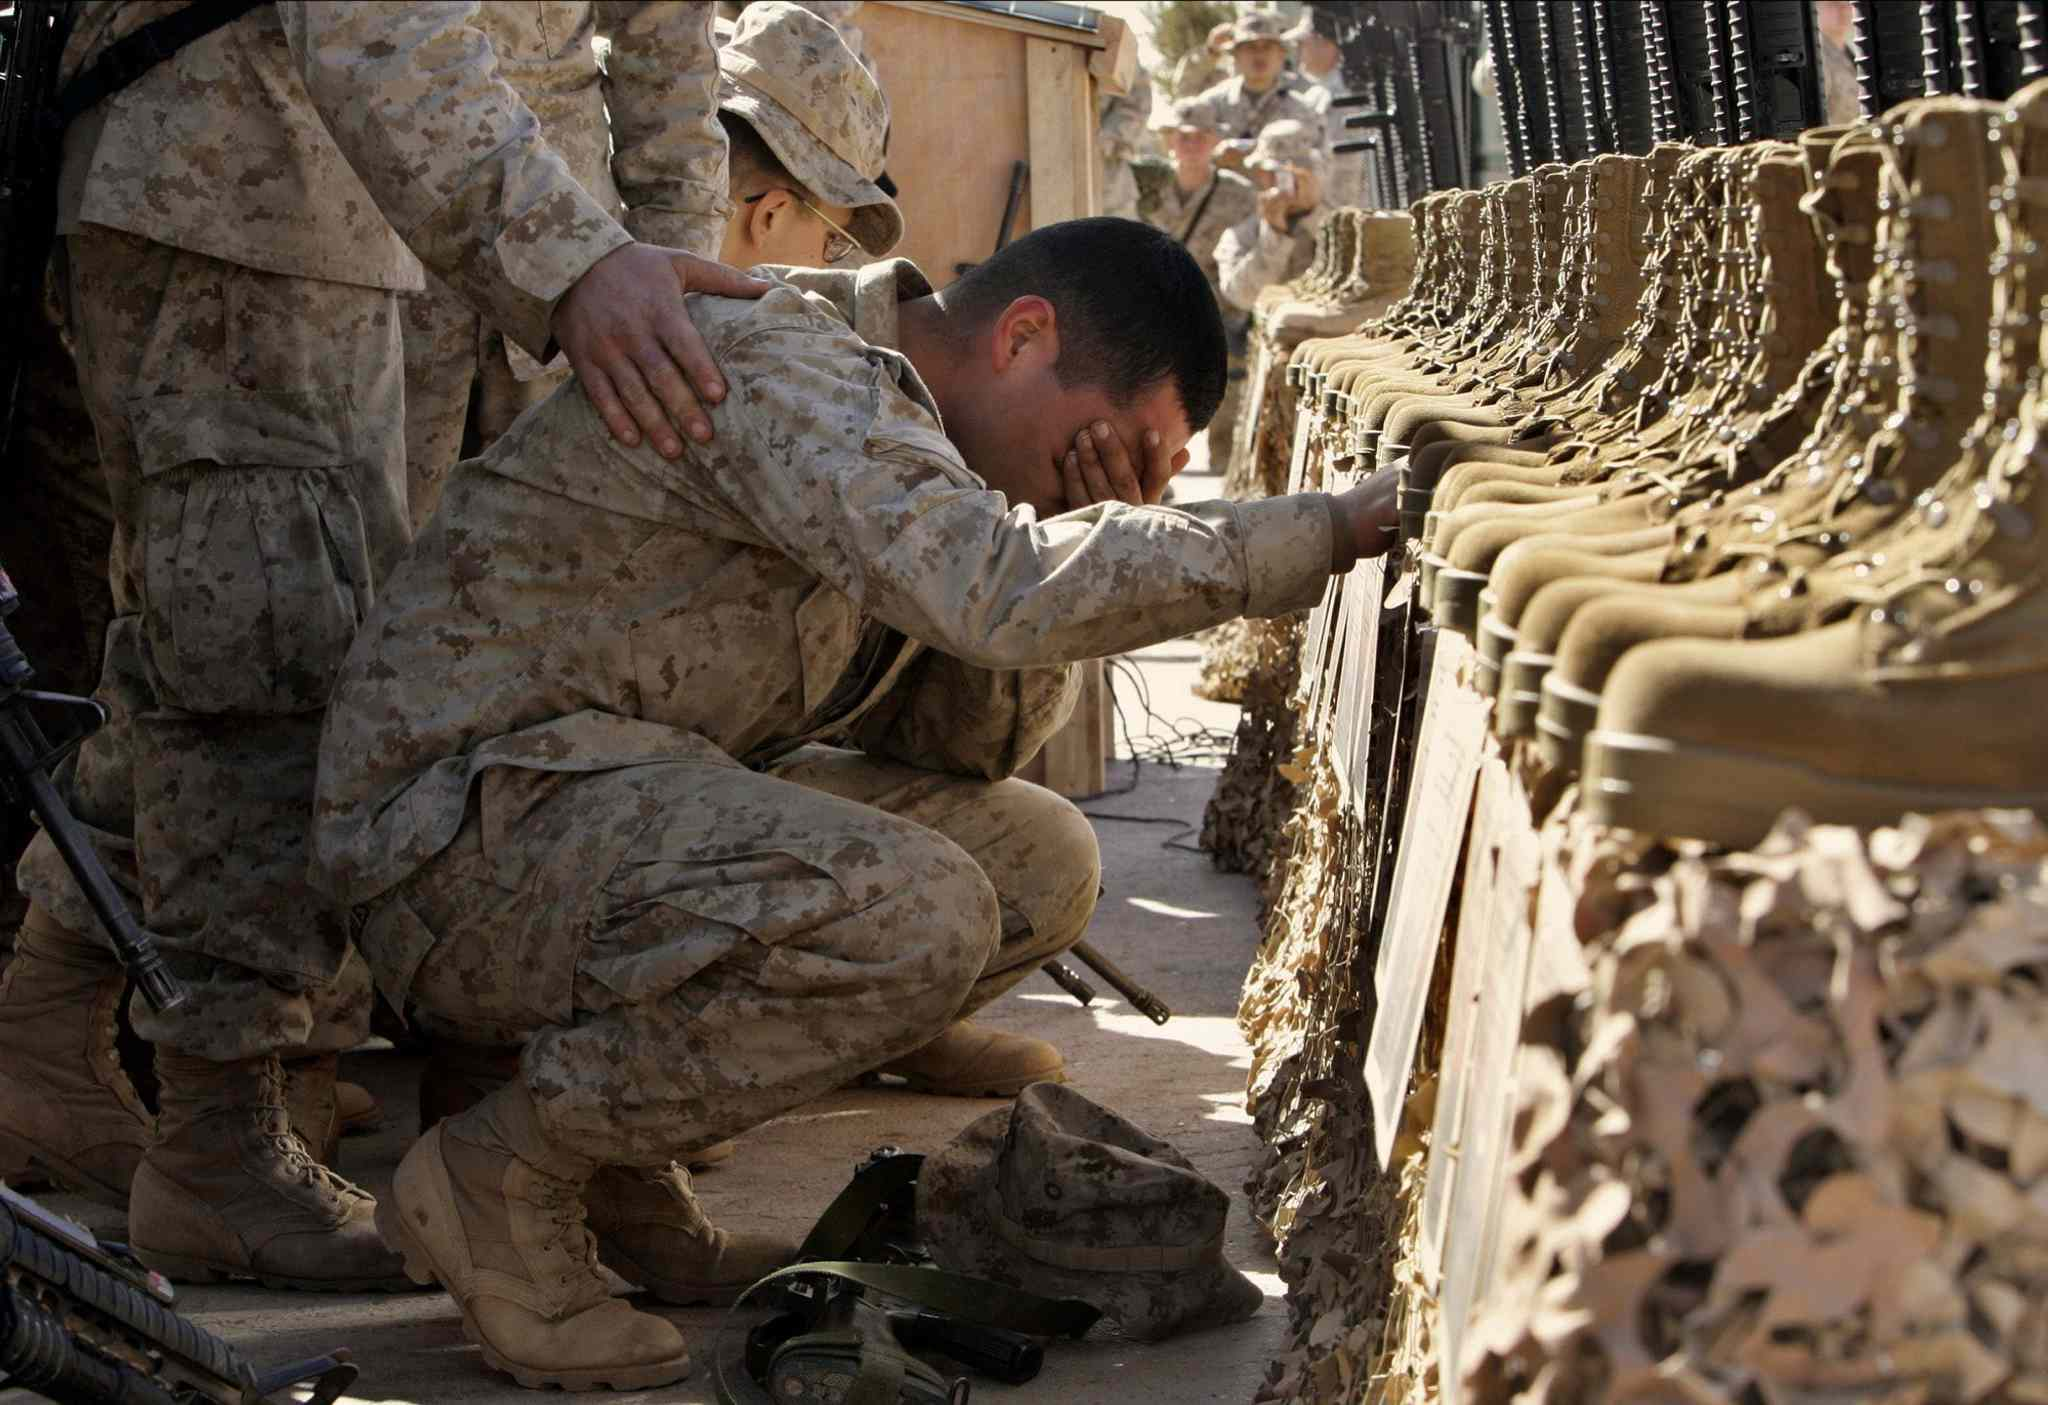 Feb. 2, 2005: A U.S. Marine cries during the memorial service for 31 killed U.S. servicemen at Camp Korean Village, near Rutbah, western Iraq.